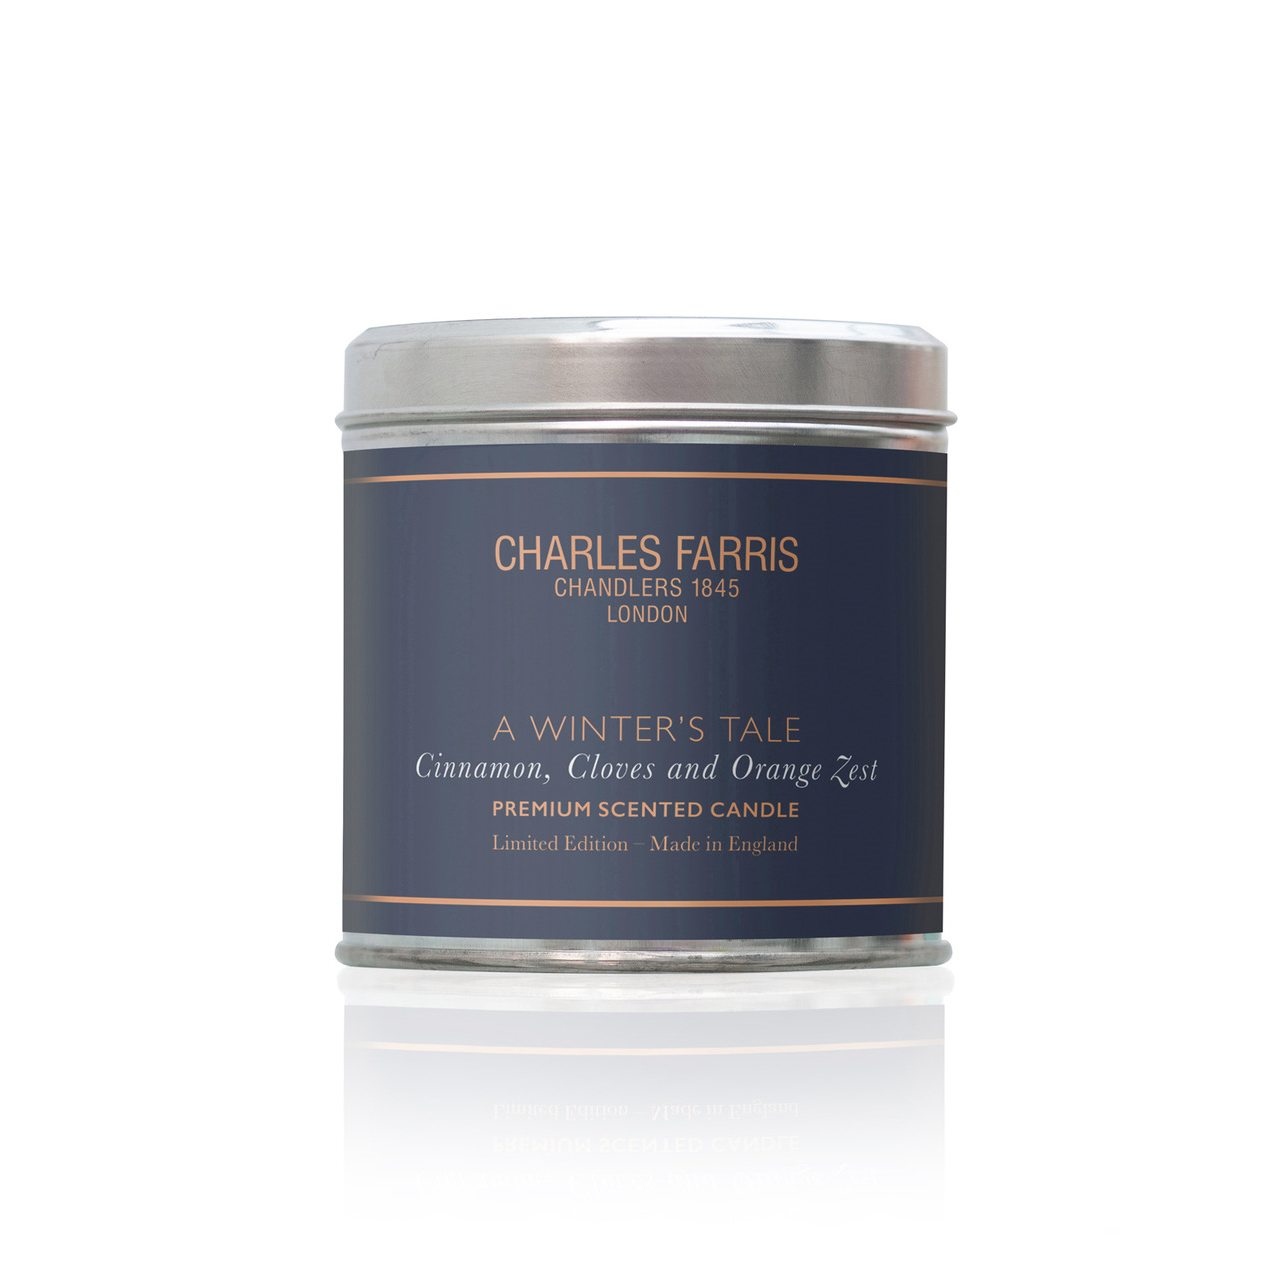 A Winter's Tale Tin Candle | Orange Zest, Cinnamon & Cloves